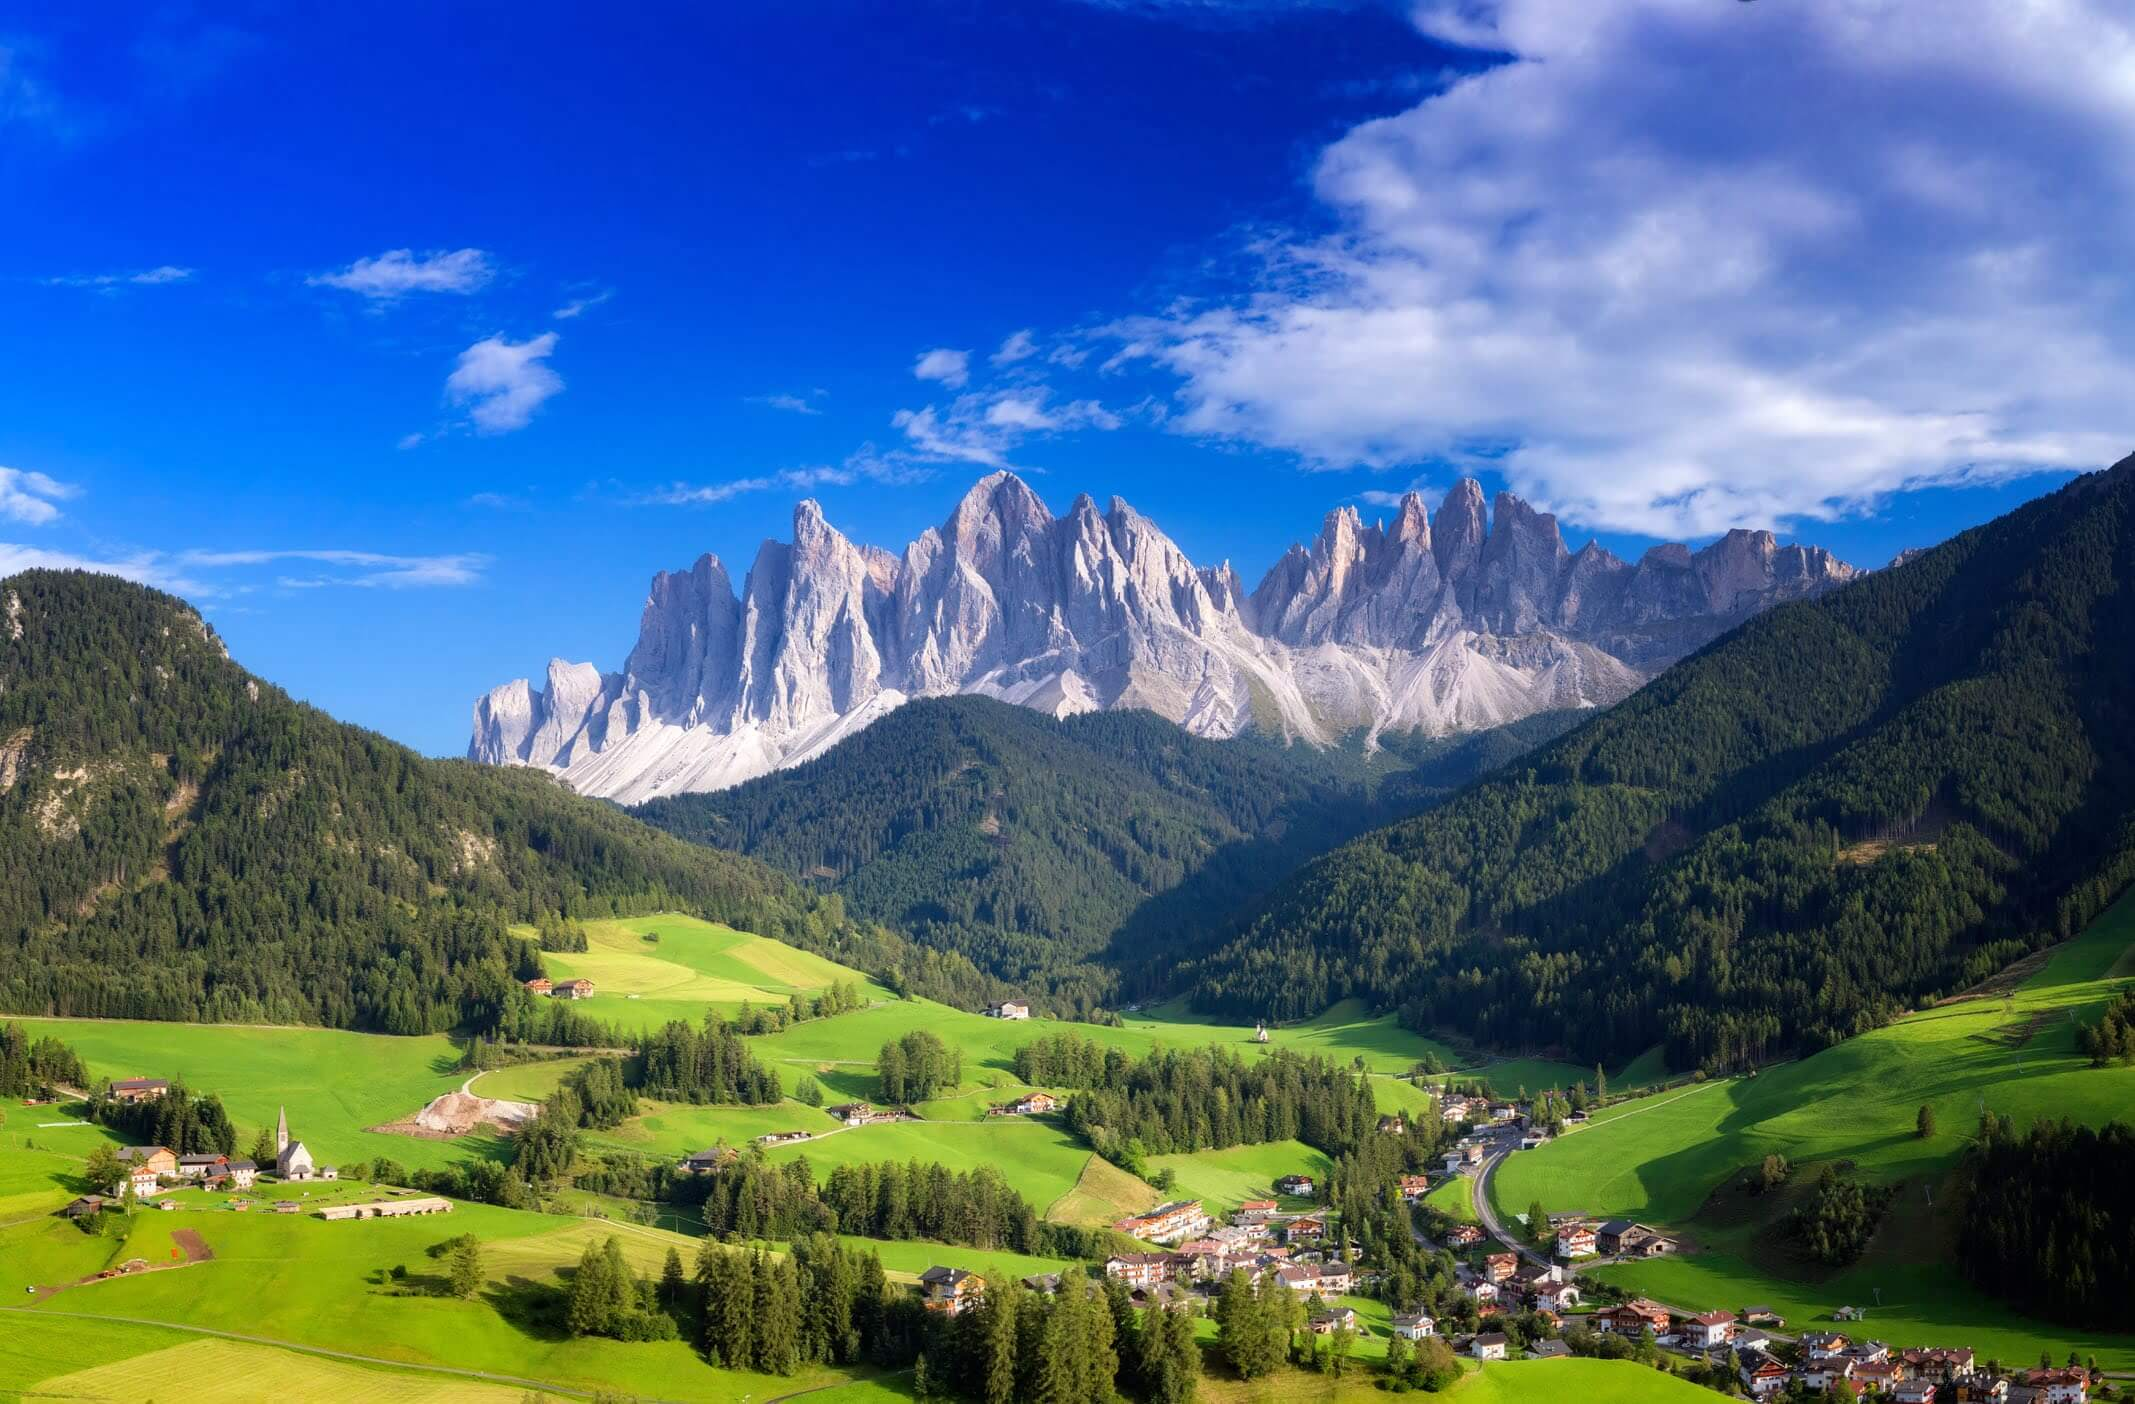 Val di Funes mountain town framed by the Dolomites